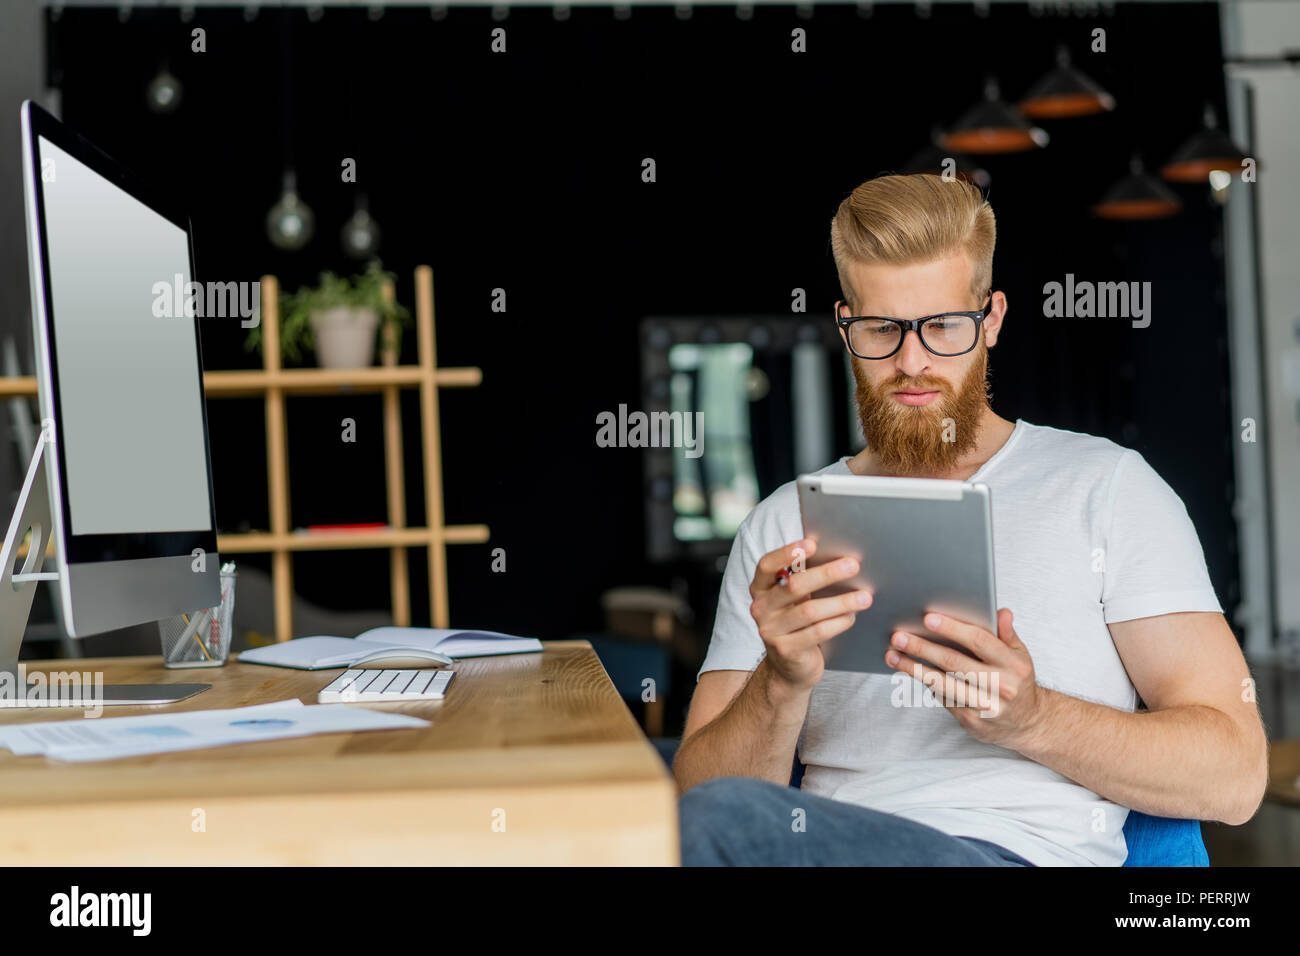 Multitasking. Handsome young man wearing glasses and working with touchpad while sitting on the couch in office - Stock Image